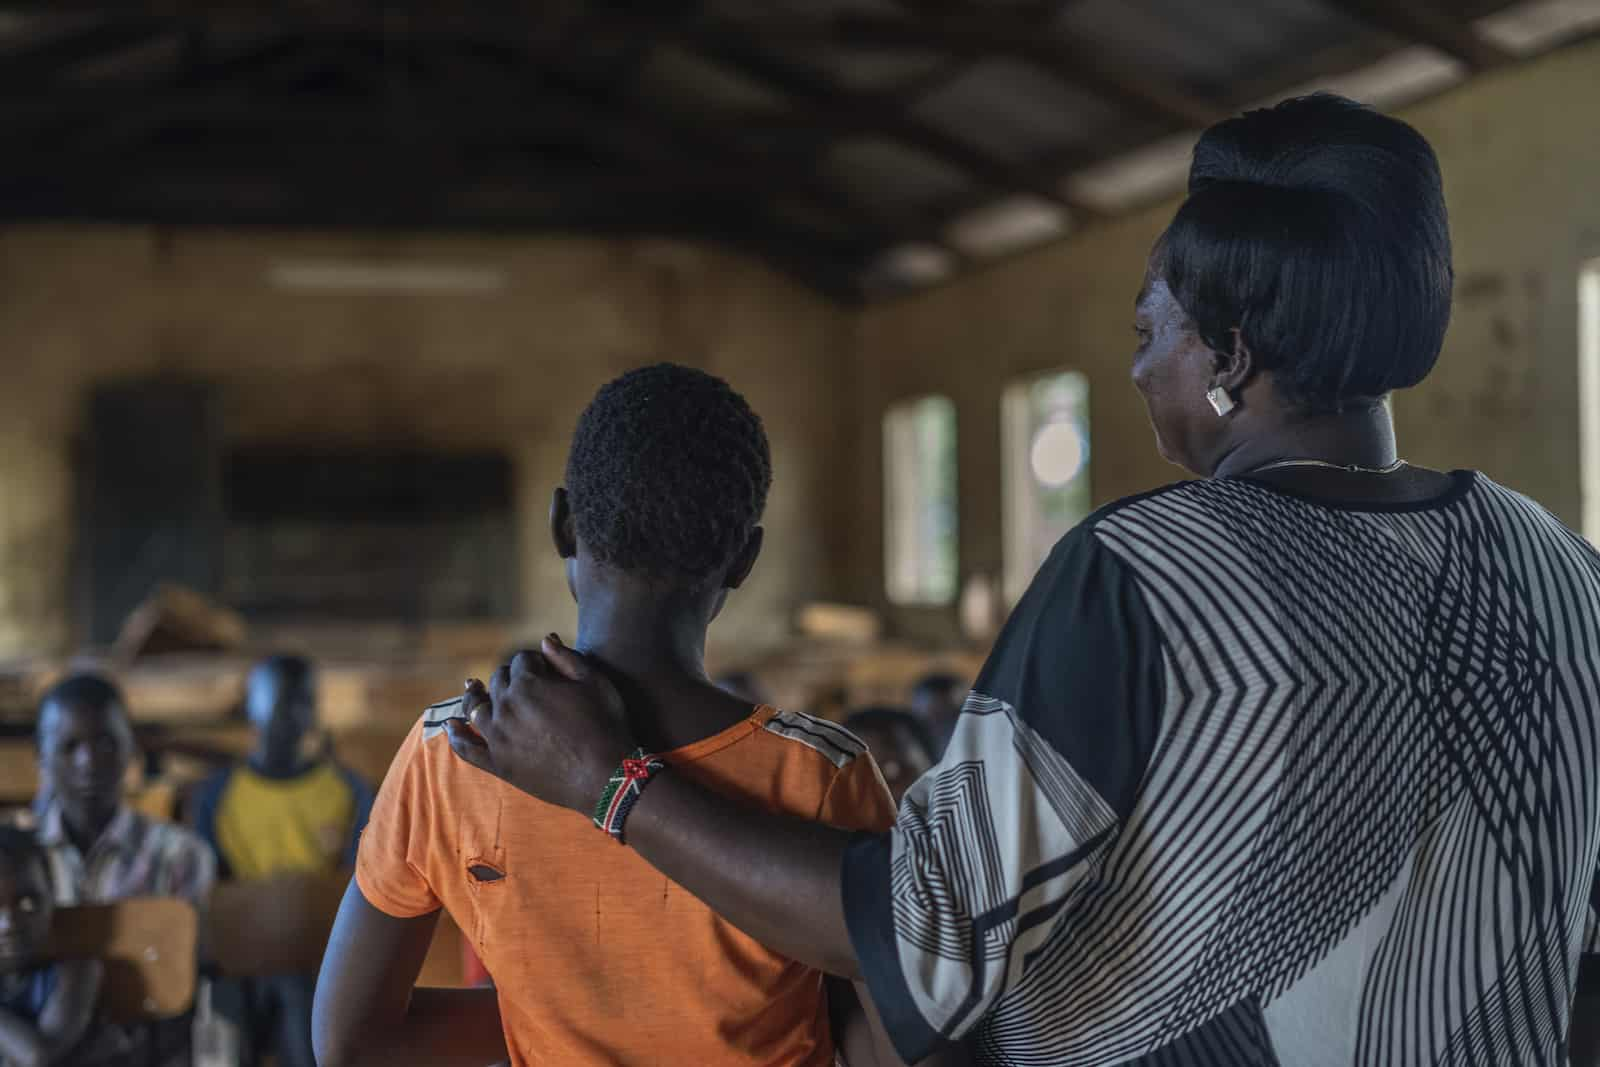 A picture from behind of a woman standing with her arm around a girl.